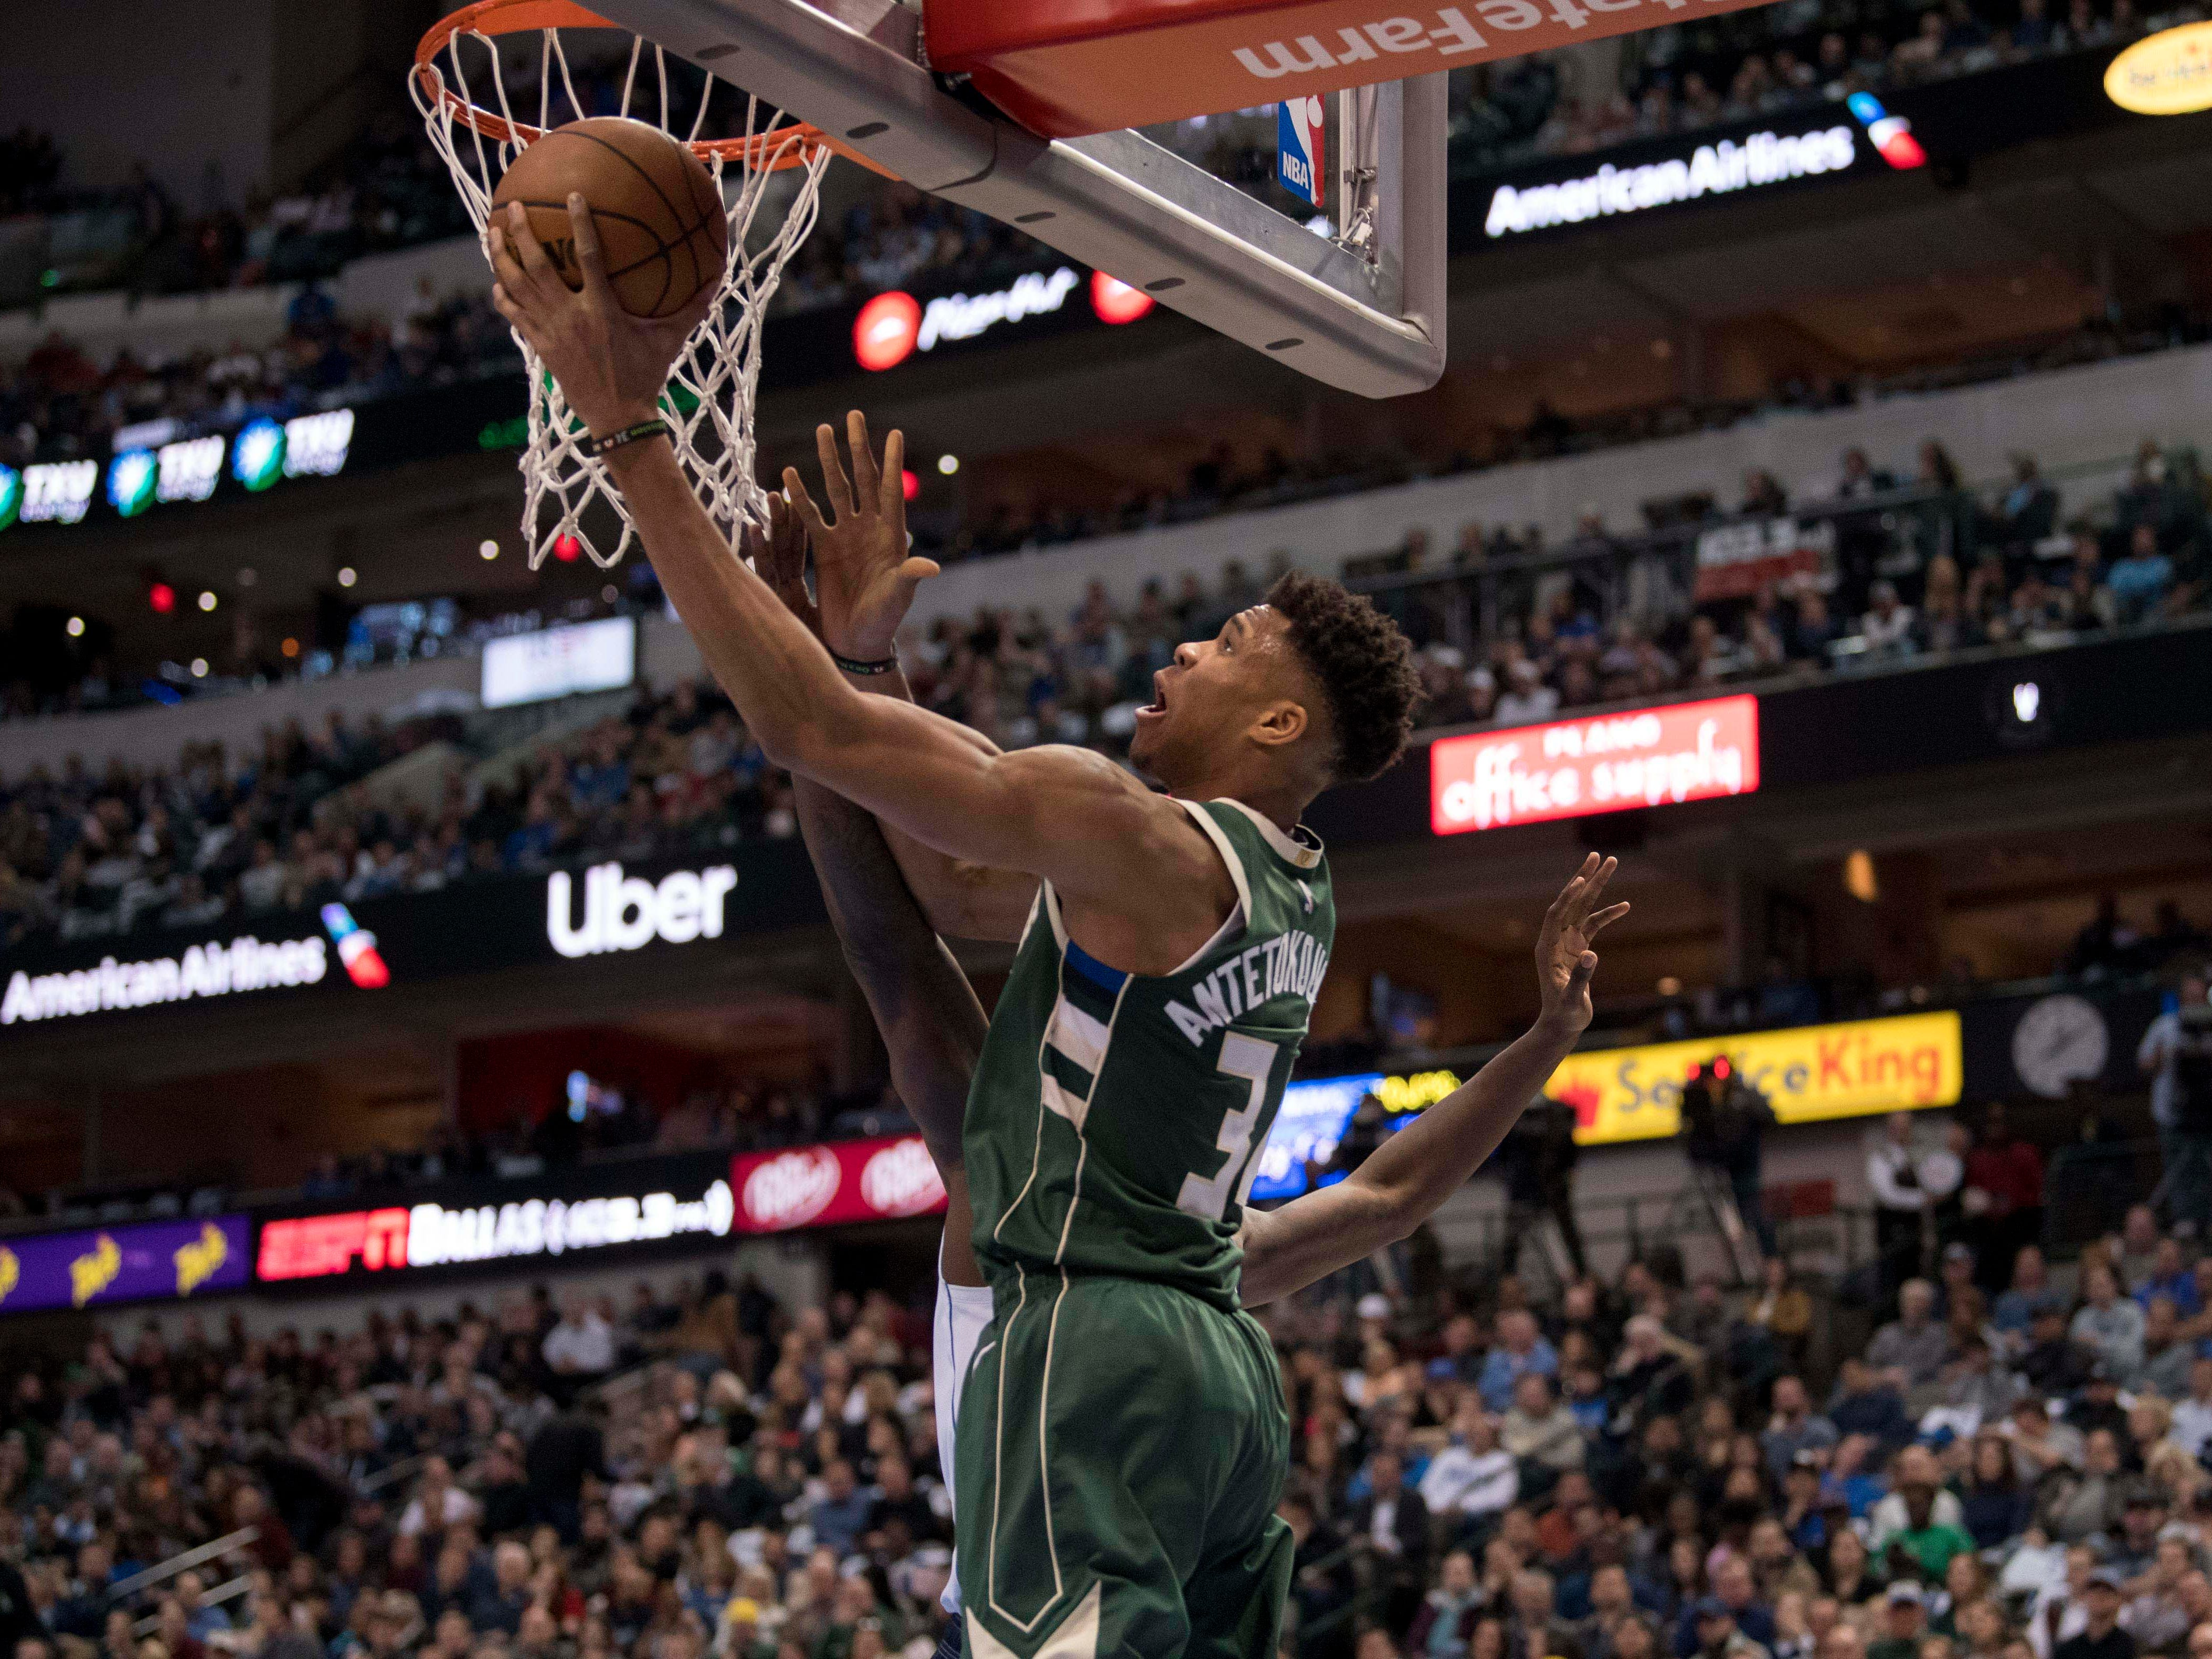 Bucks forward Giannis Antetokounmpo goes up for a reverse dunk during the second quarter against the Mavericks on Friday night.